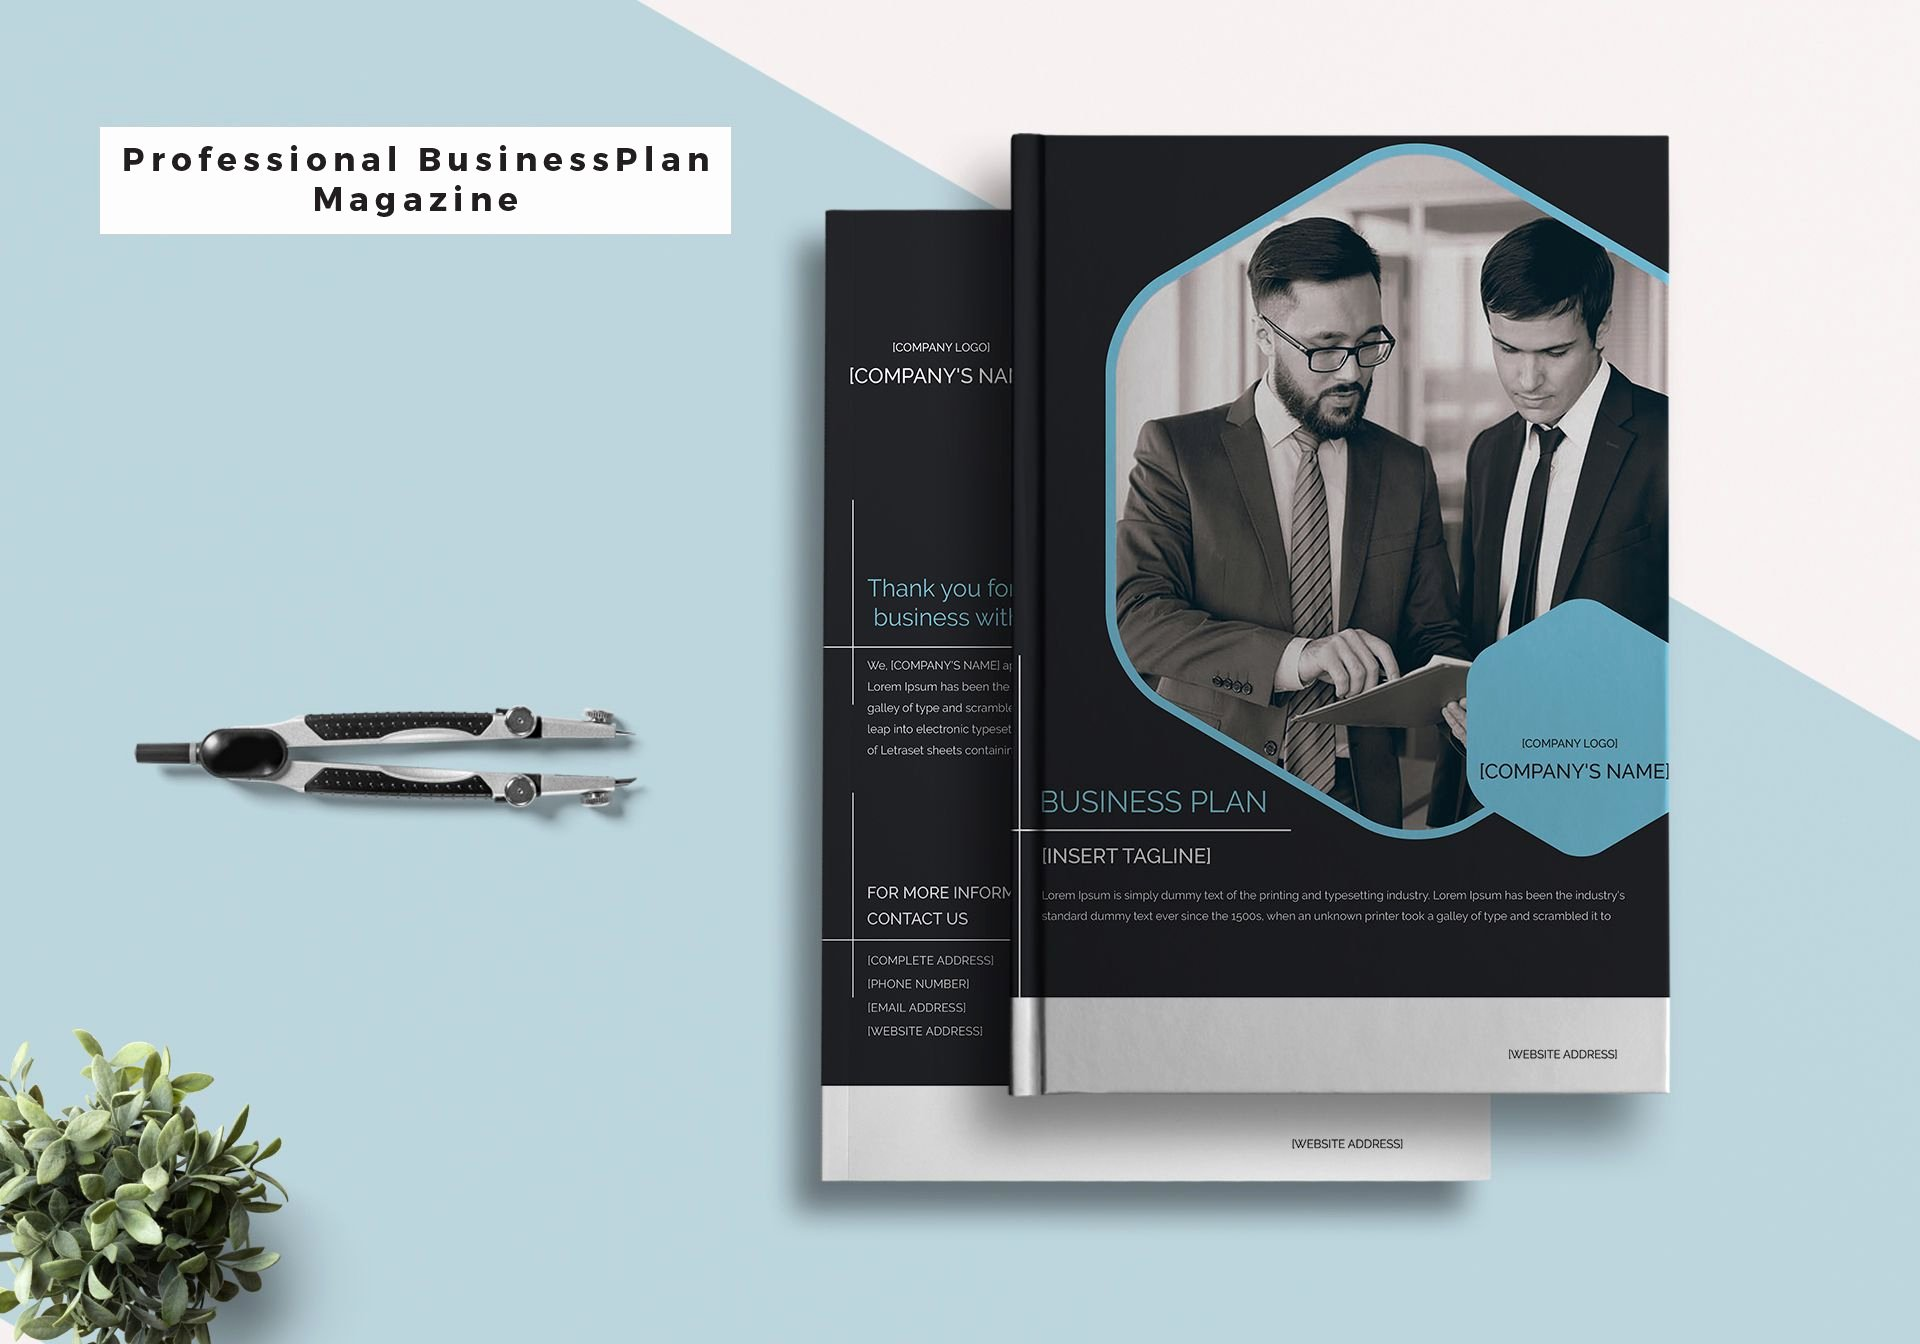 Magazine Templates for Word New Professional Business Plan Magazine Template In Psd Word